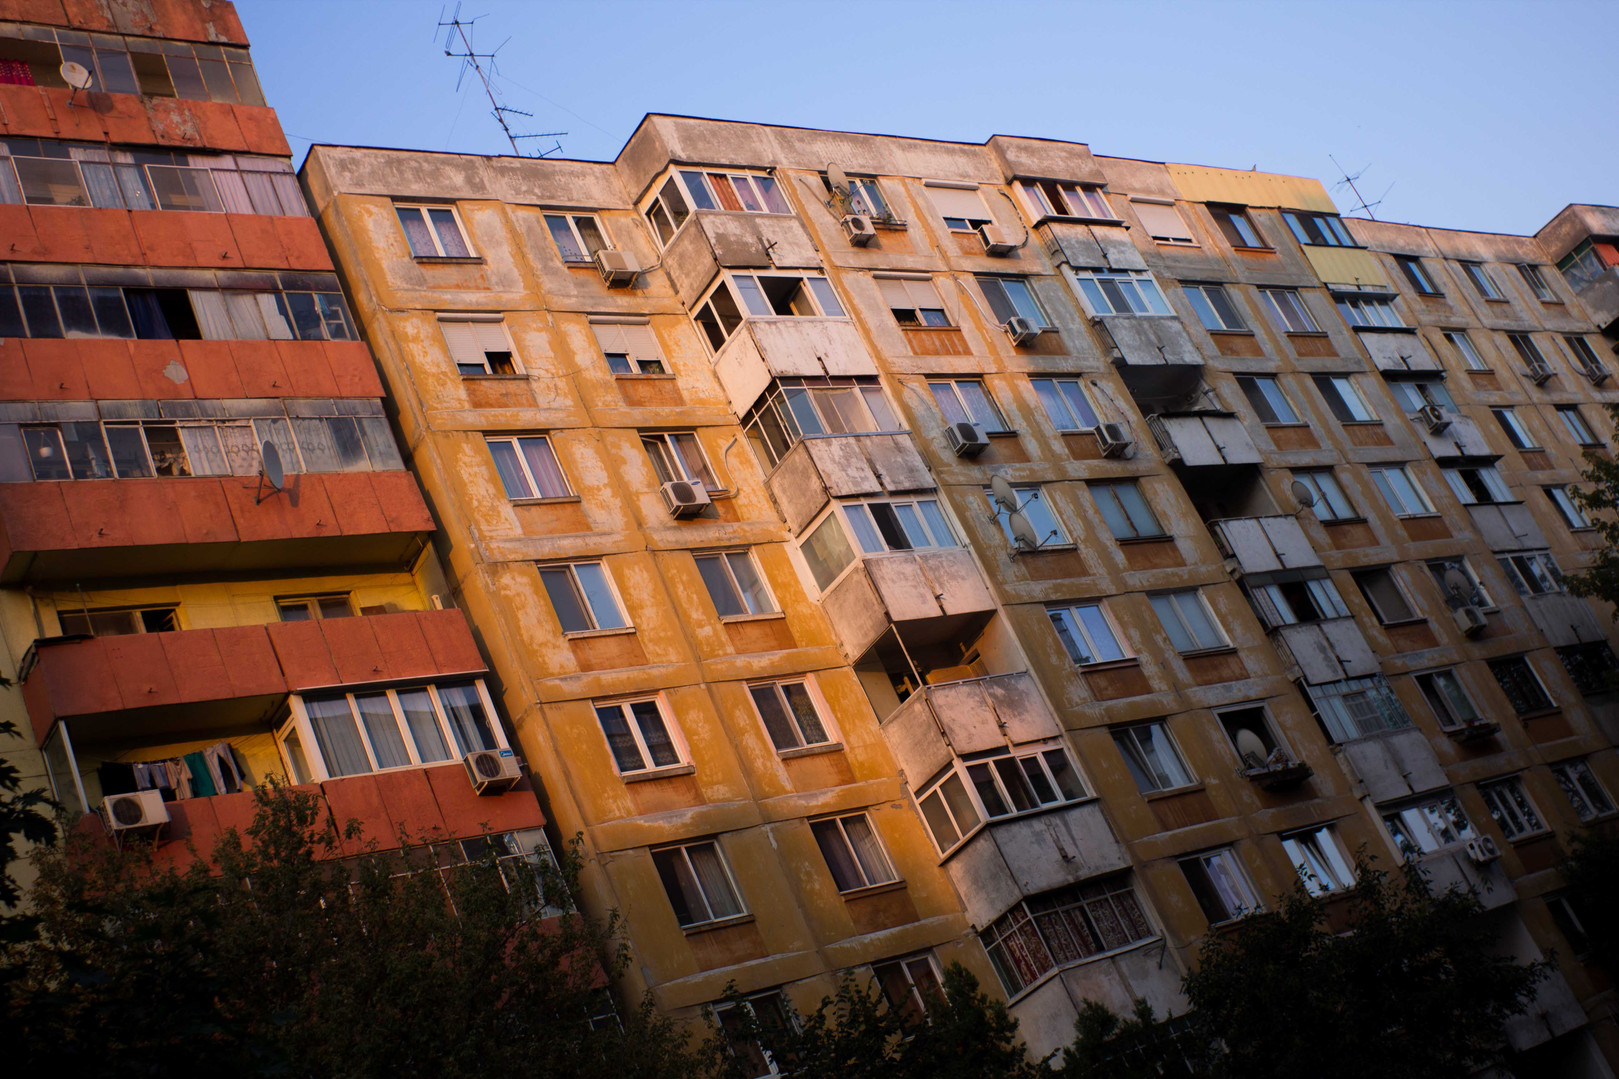 bucharest_2015-4112_21553284568_o.jpg